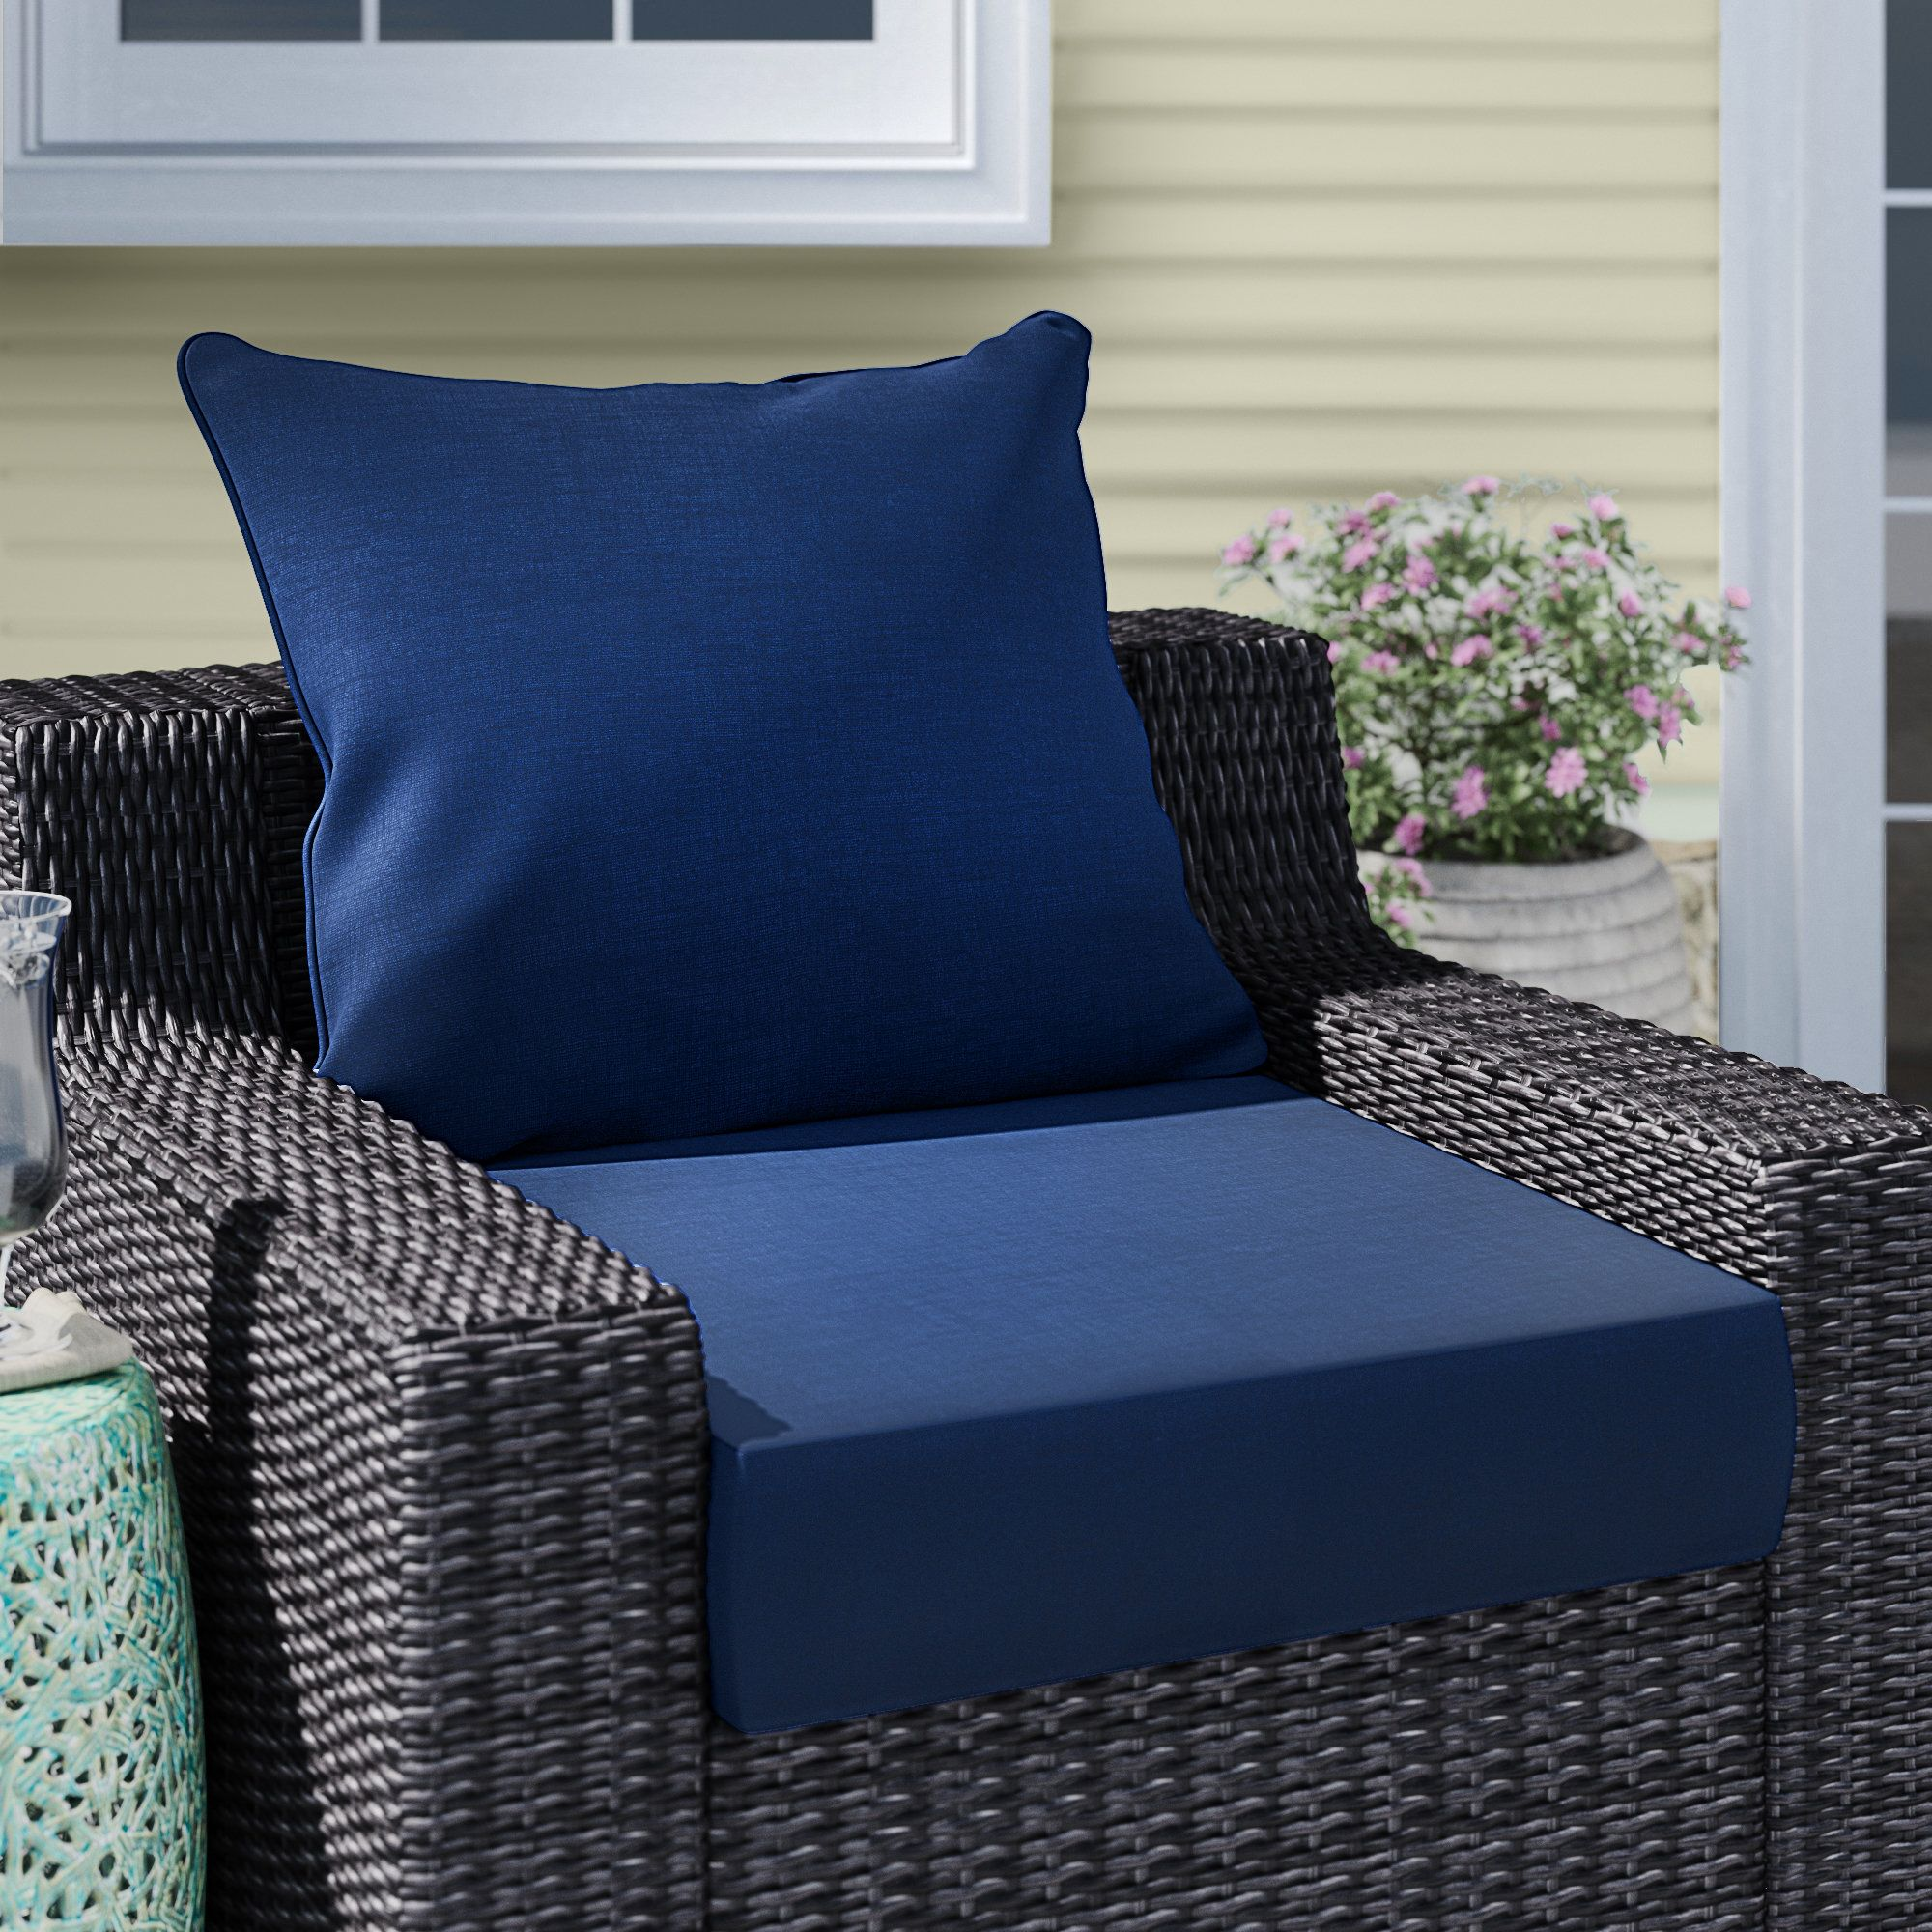 Outdoor Wayfair (With images) Outdoor lounge chair